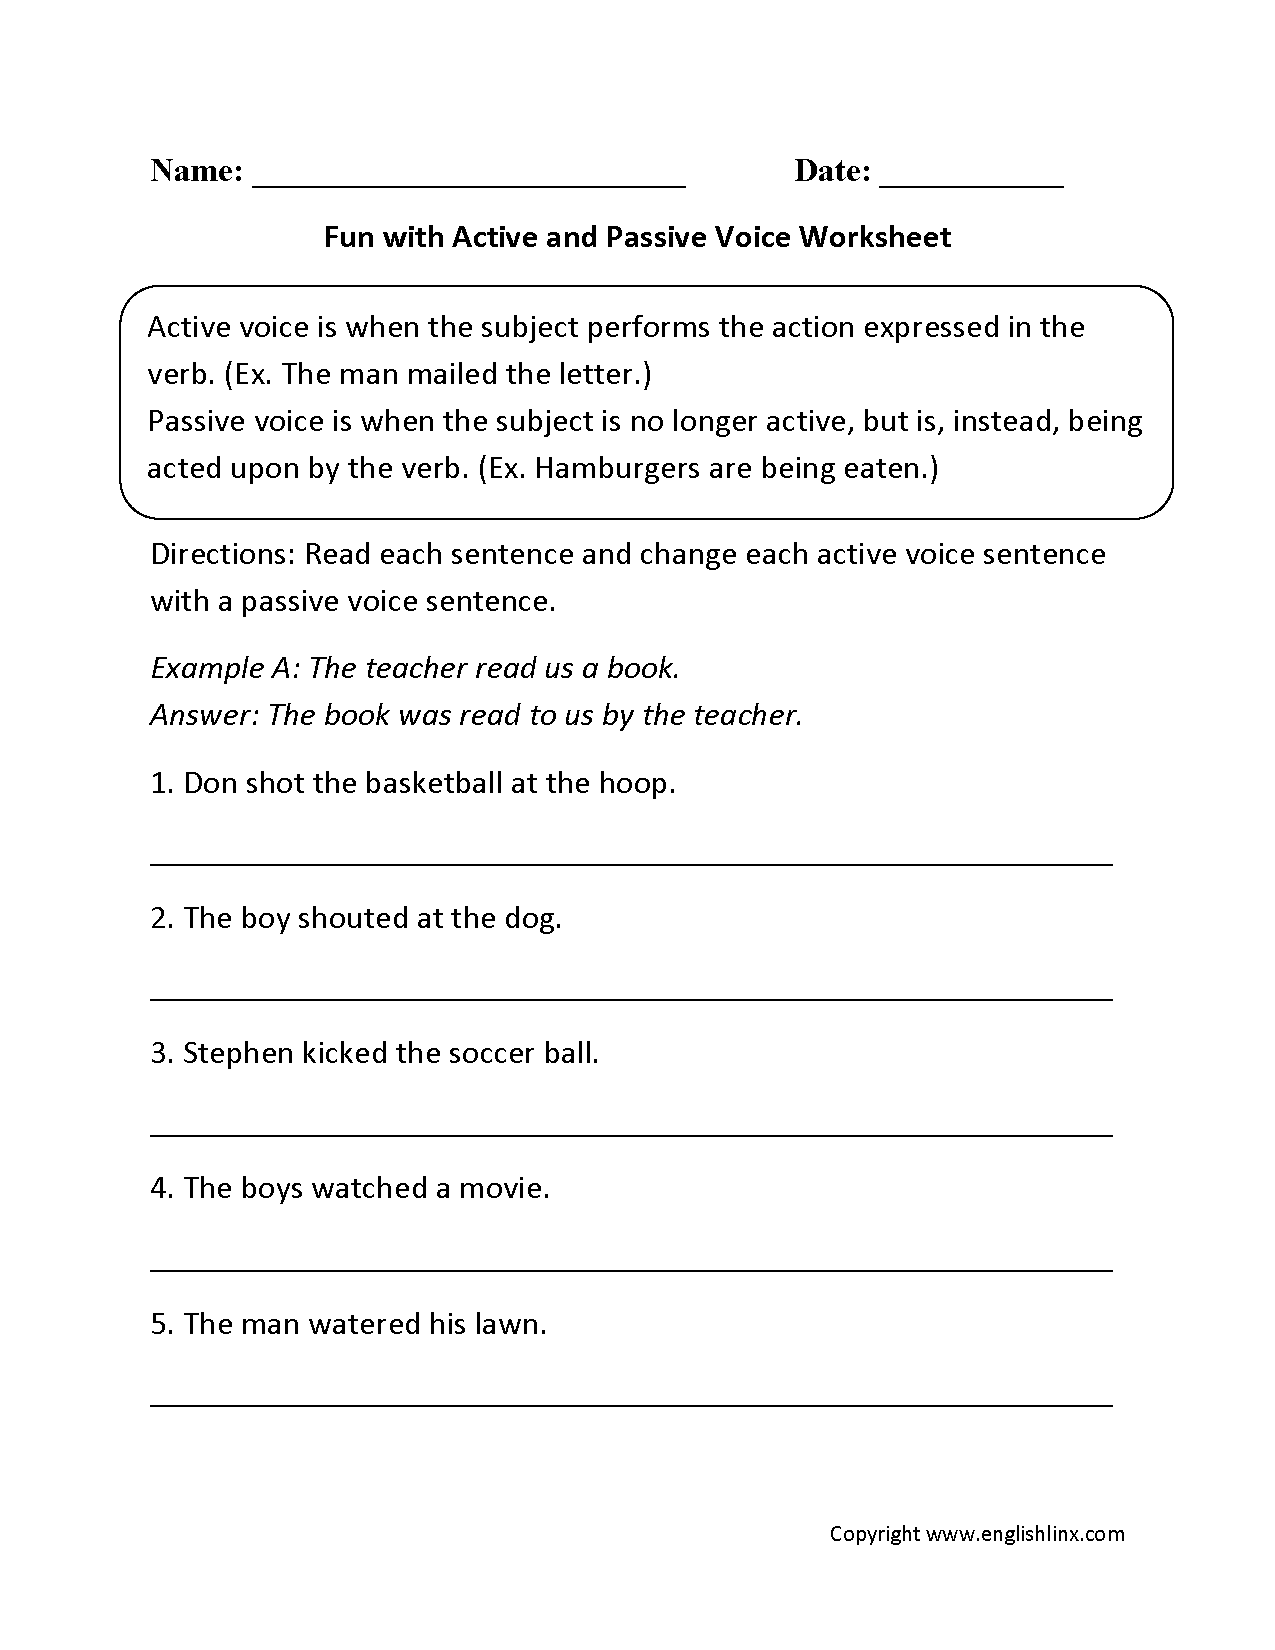 Worksheets Grammar Worksheets 6th Grade englishlinx com active and passive voice worksheets worksheets